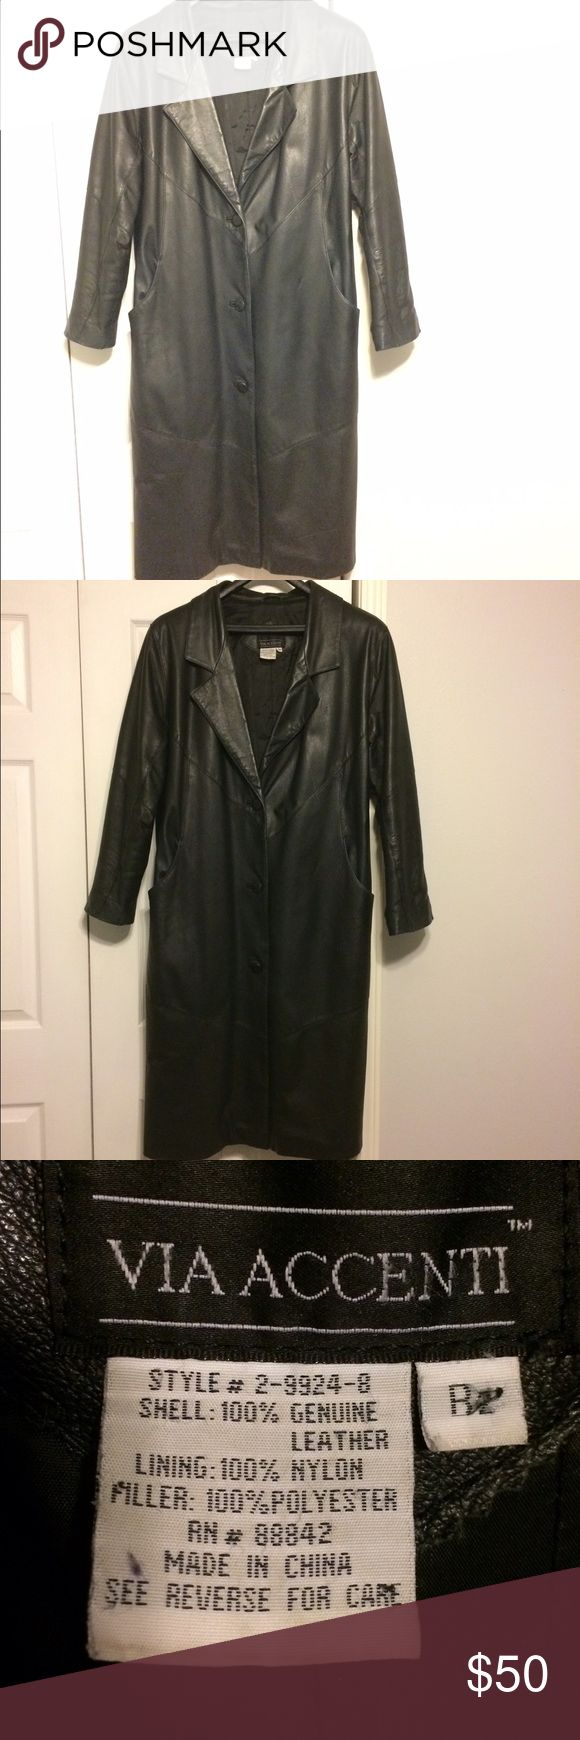 Woman's Leather coat Genuine Leather coat. Back vent (pic 7) Little wear near top front button. (Pic 6) No Tears. Lining in good condition. Via Accenti Jackets & Coats